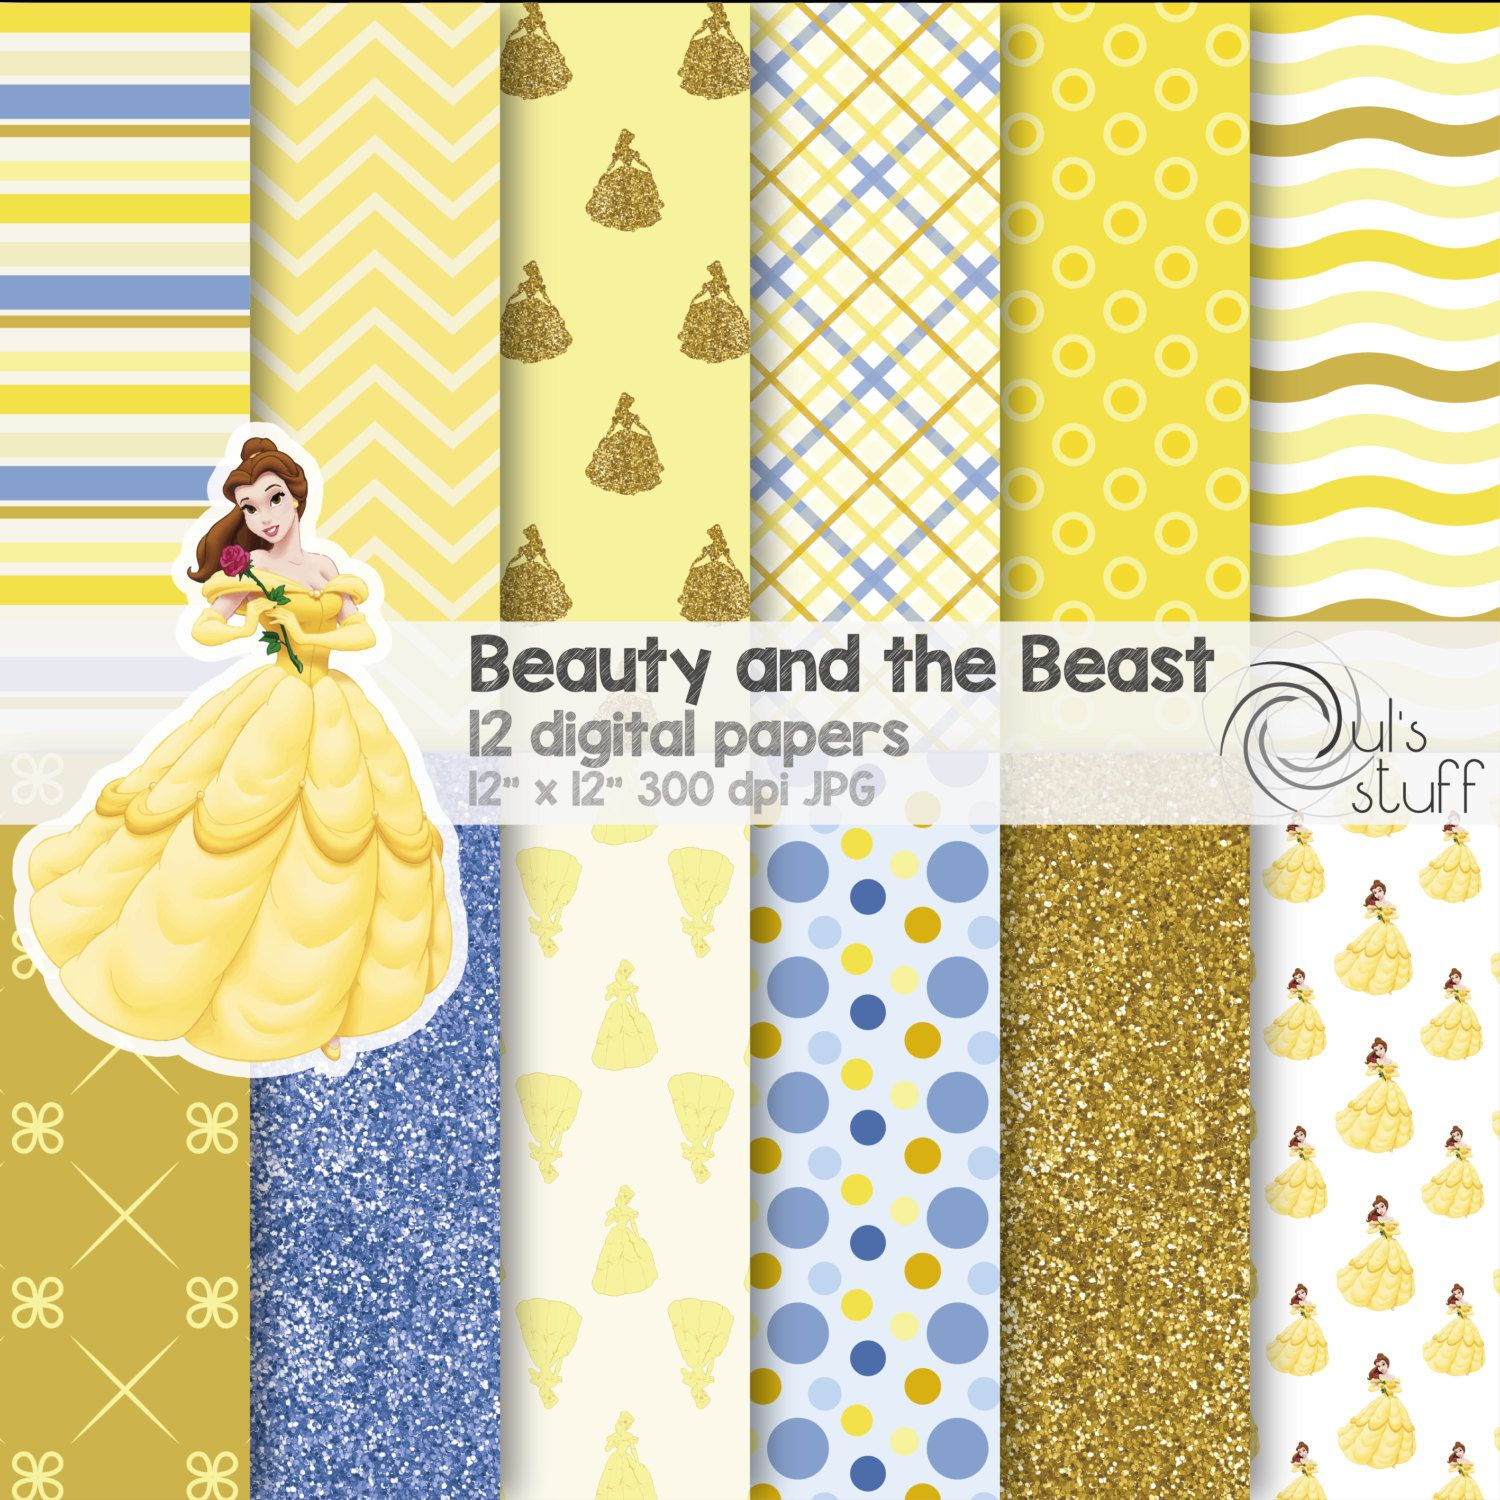 Essay/Term paper: Beauty and the beast